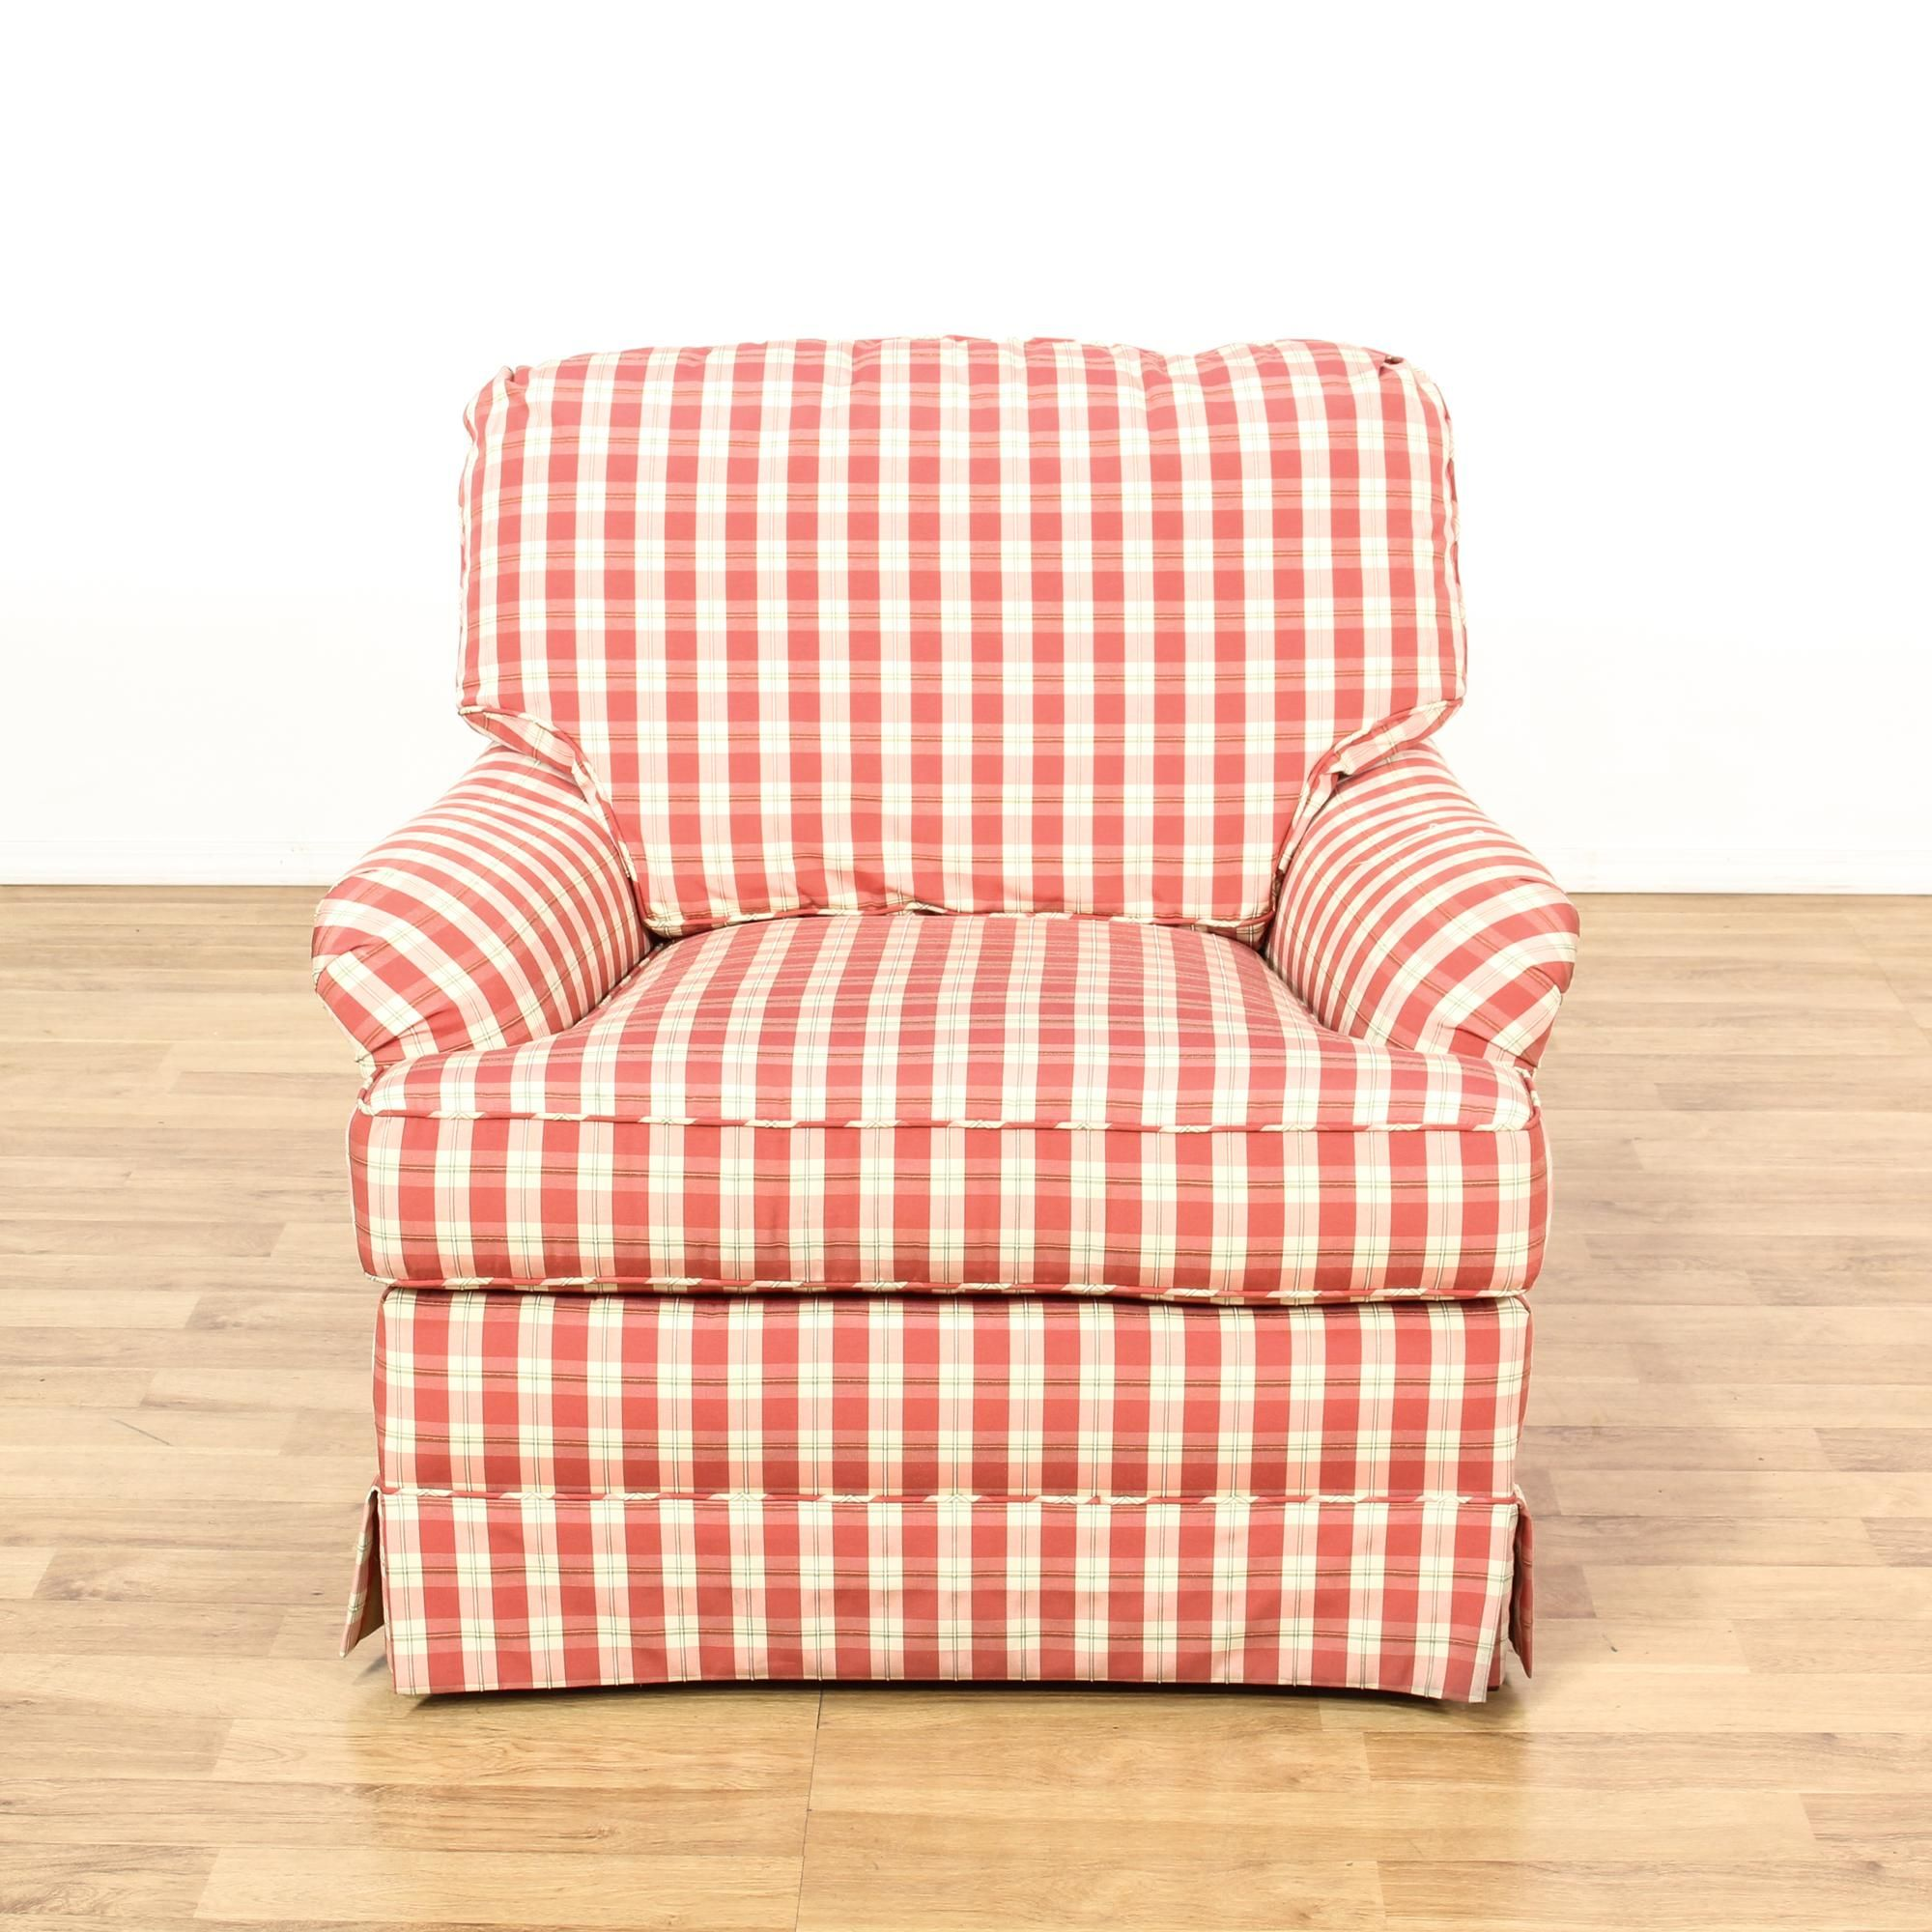 This armchair is upholstered in a red and white plaid gingham